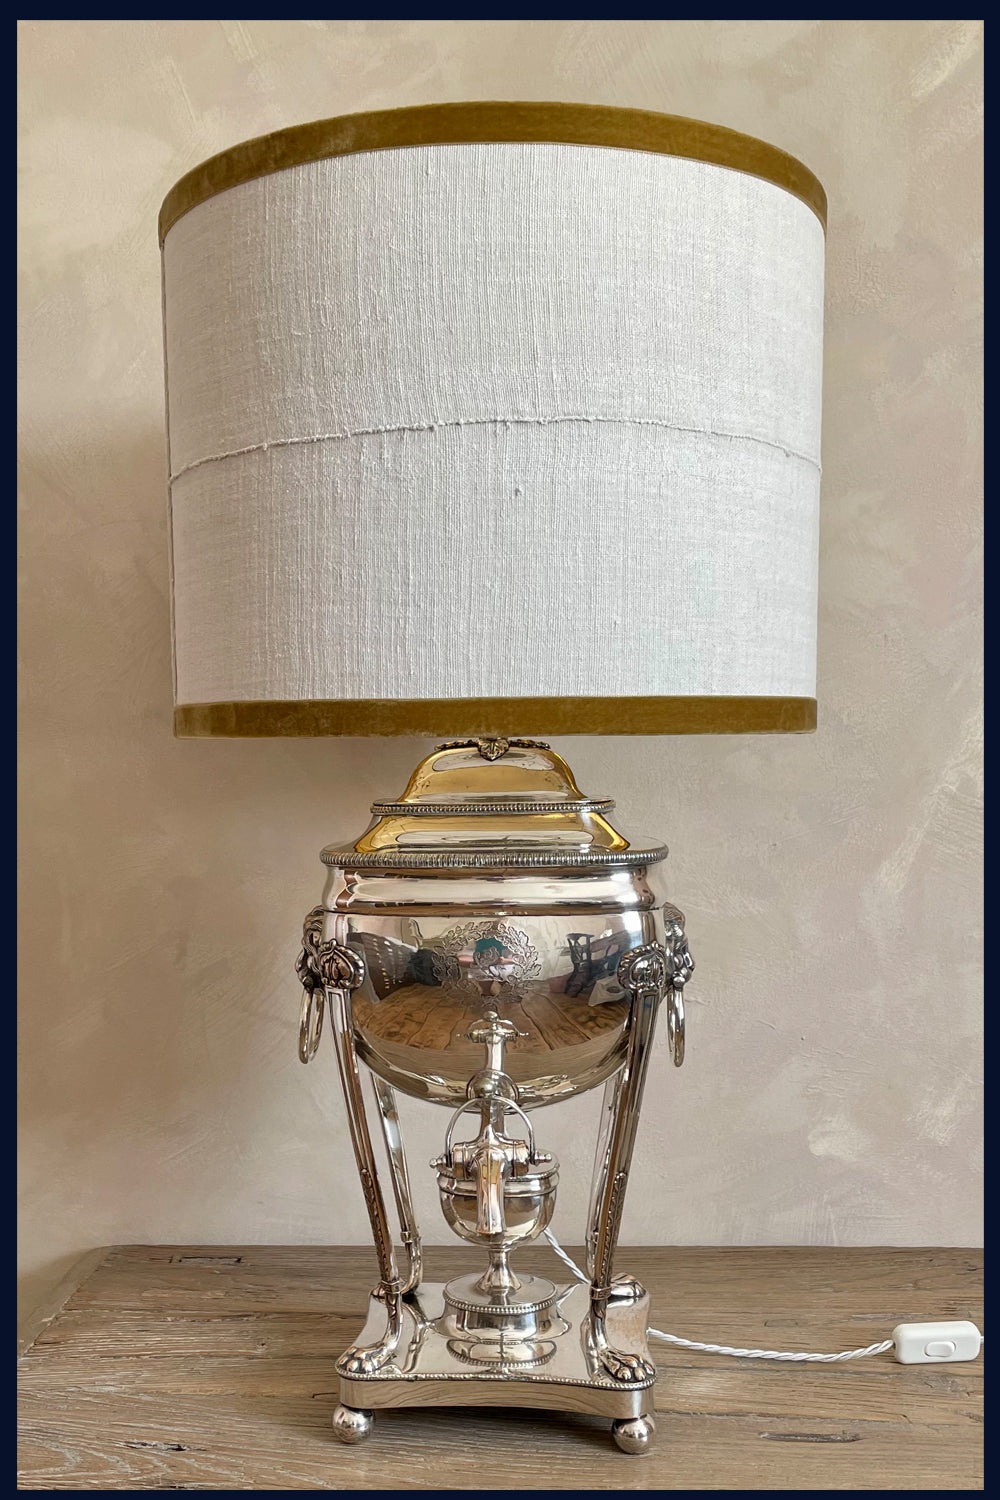 Hydrangea Bouquet - Limited Edition Lampshades Featuring White Hydrangea Blooms